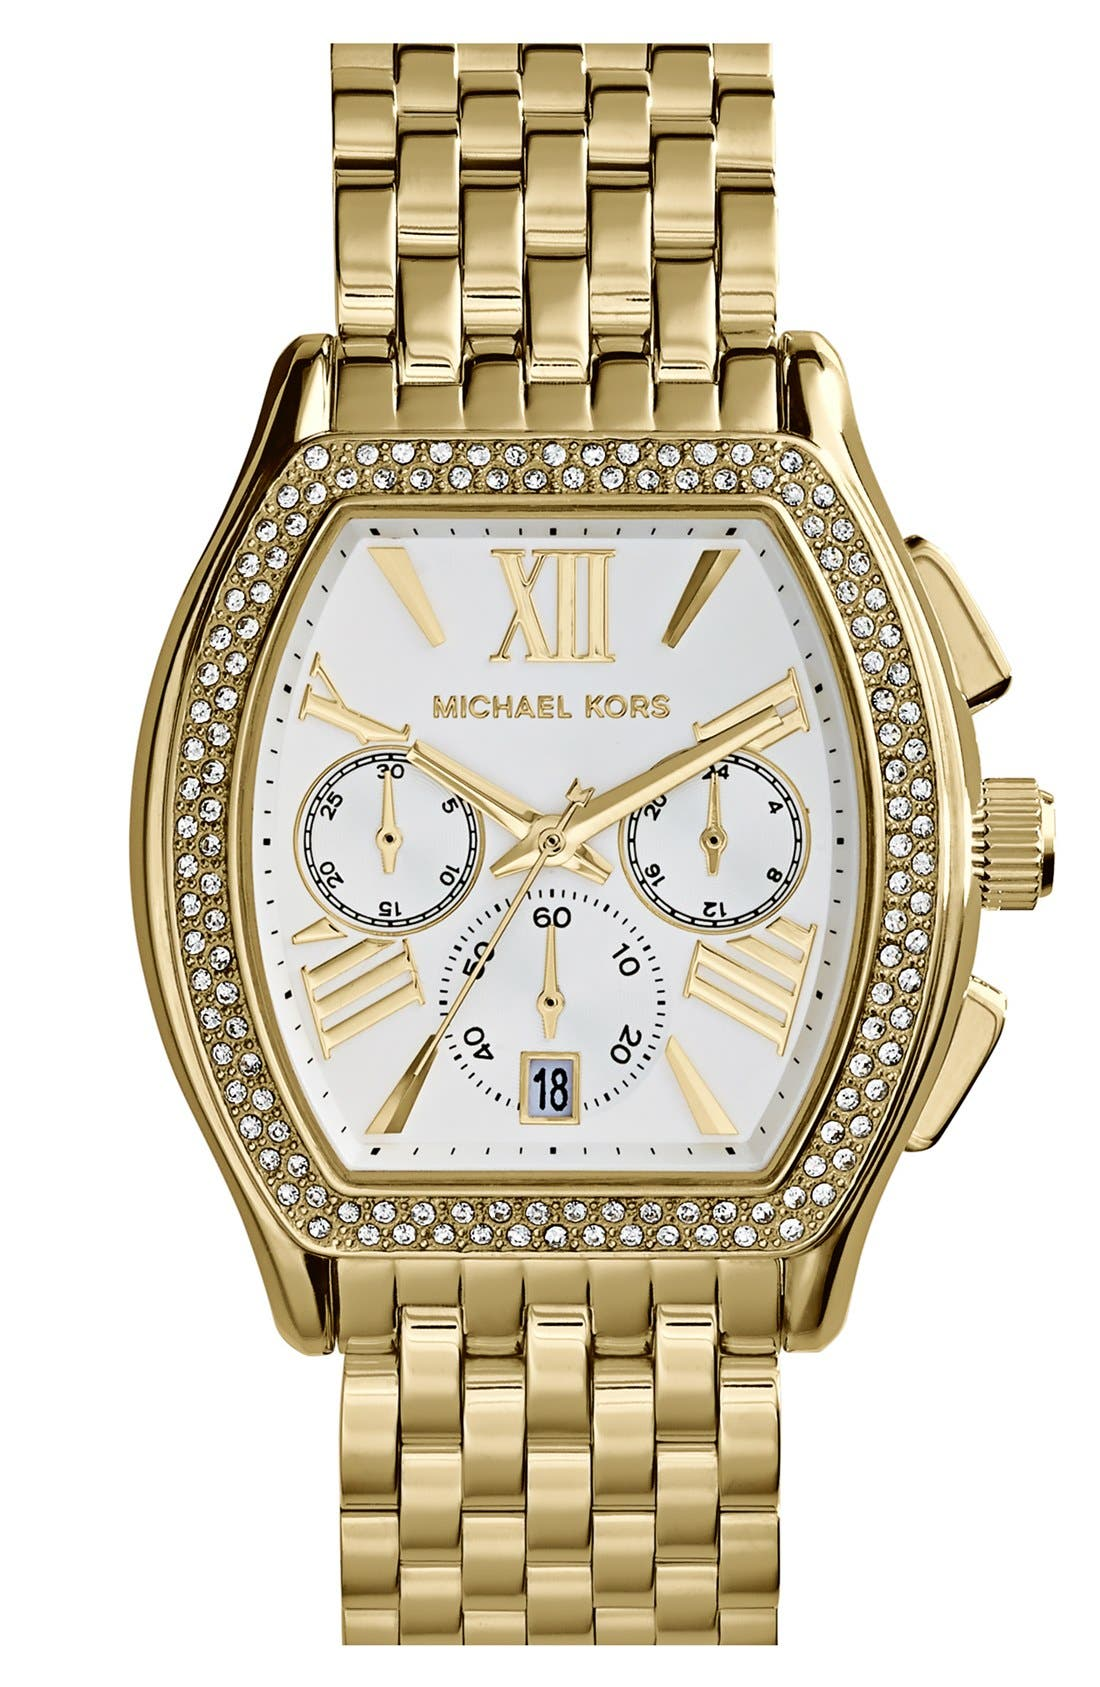 Main Image - Michael Kors 'Amherst' Crystal Bezel Chronograph Bracelet Watch, 38mm